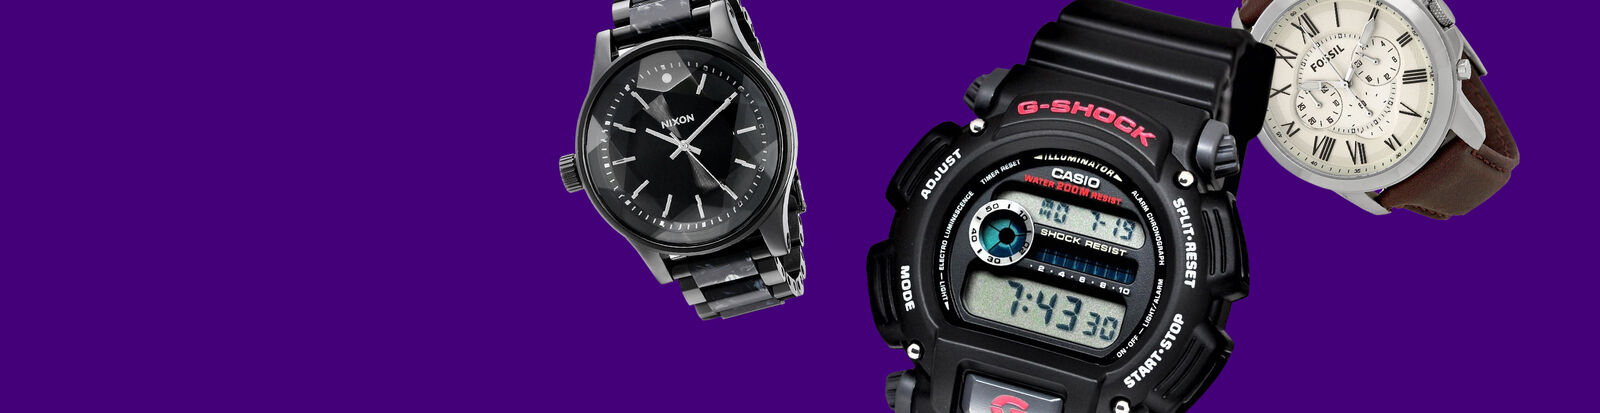 The Watches They Want for Under $60. Save now.